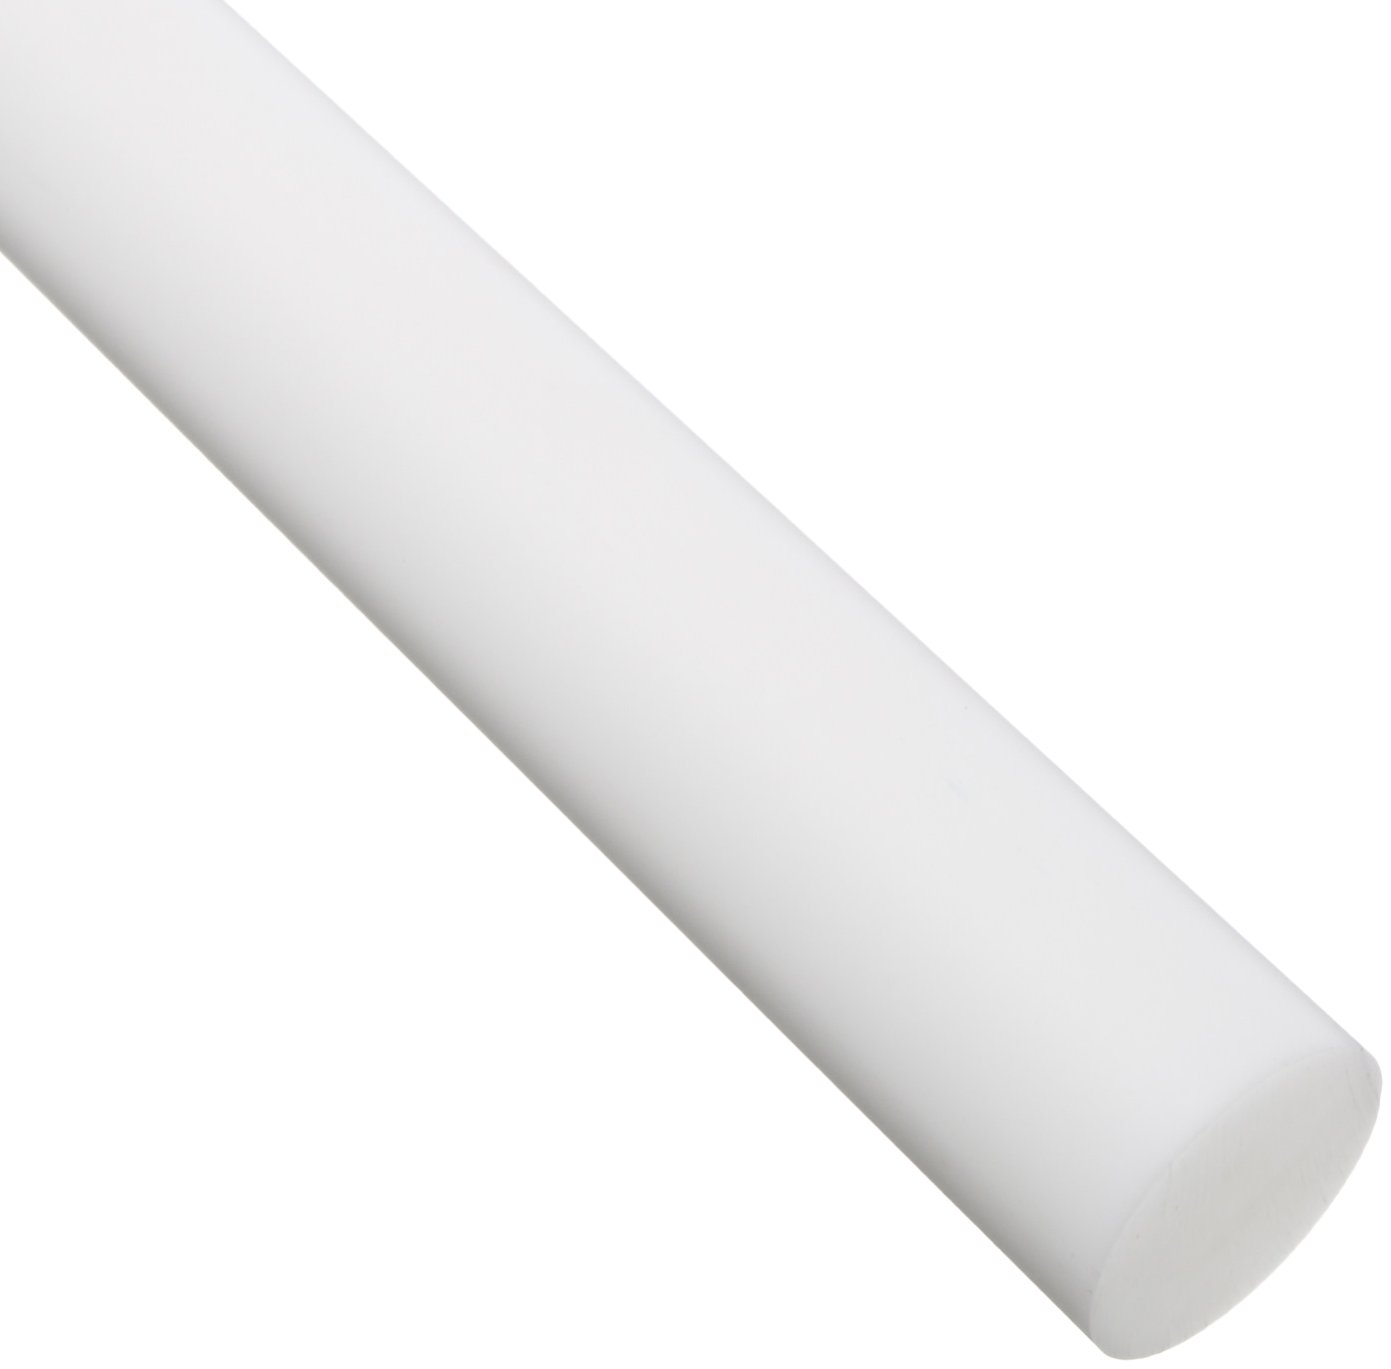 Acetal Round Rod, Opaque White, Meets ASTM D6100, 1/2' Diameter, 3' Length 1/2 Diameter 3' Length Small Parts Inc 902733